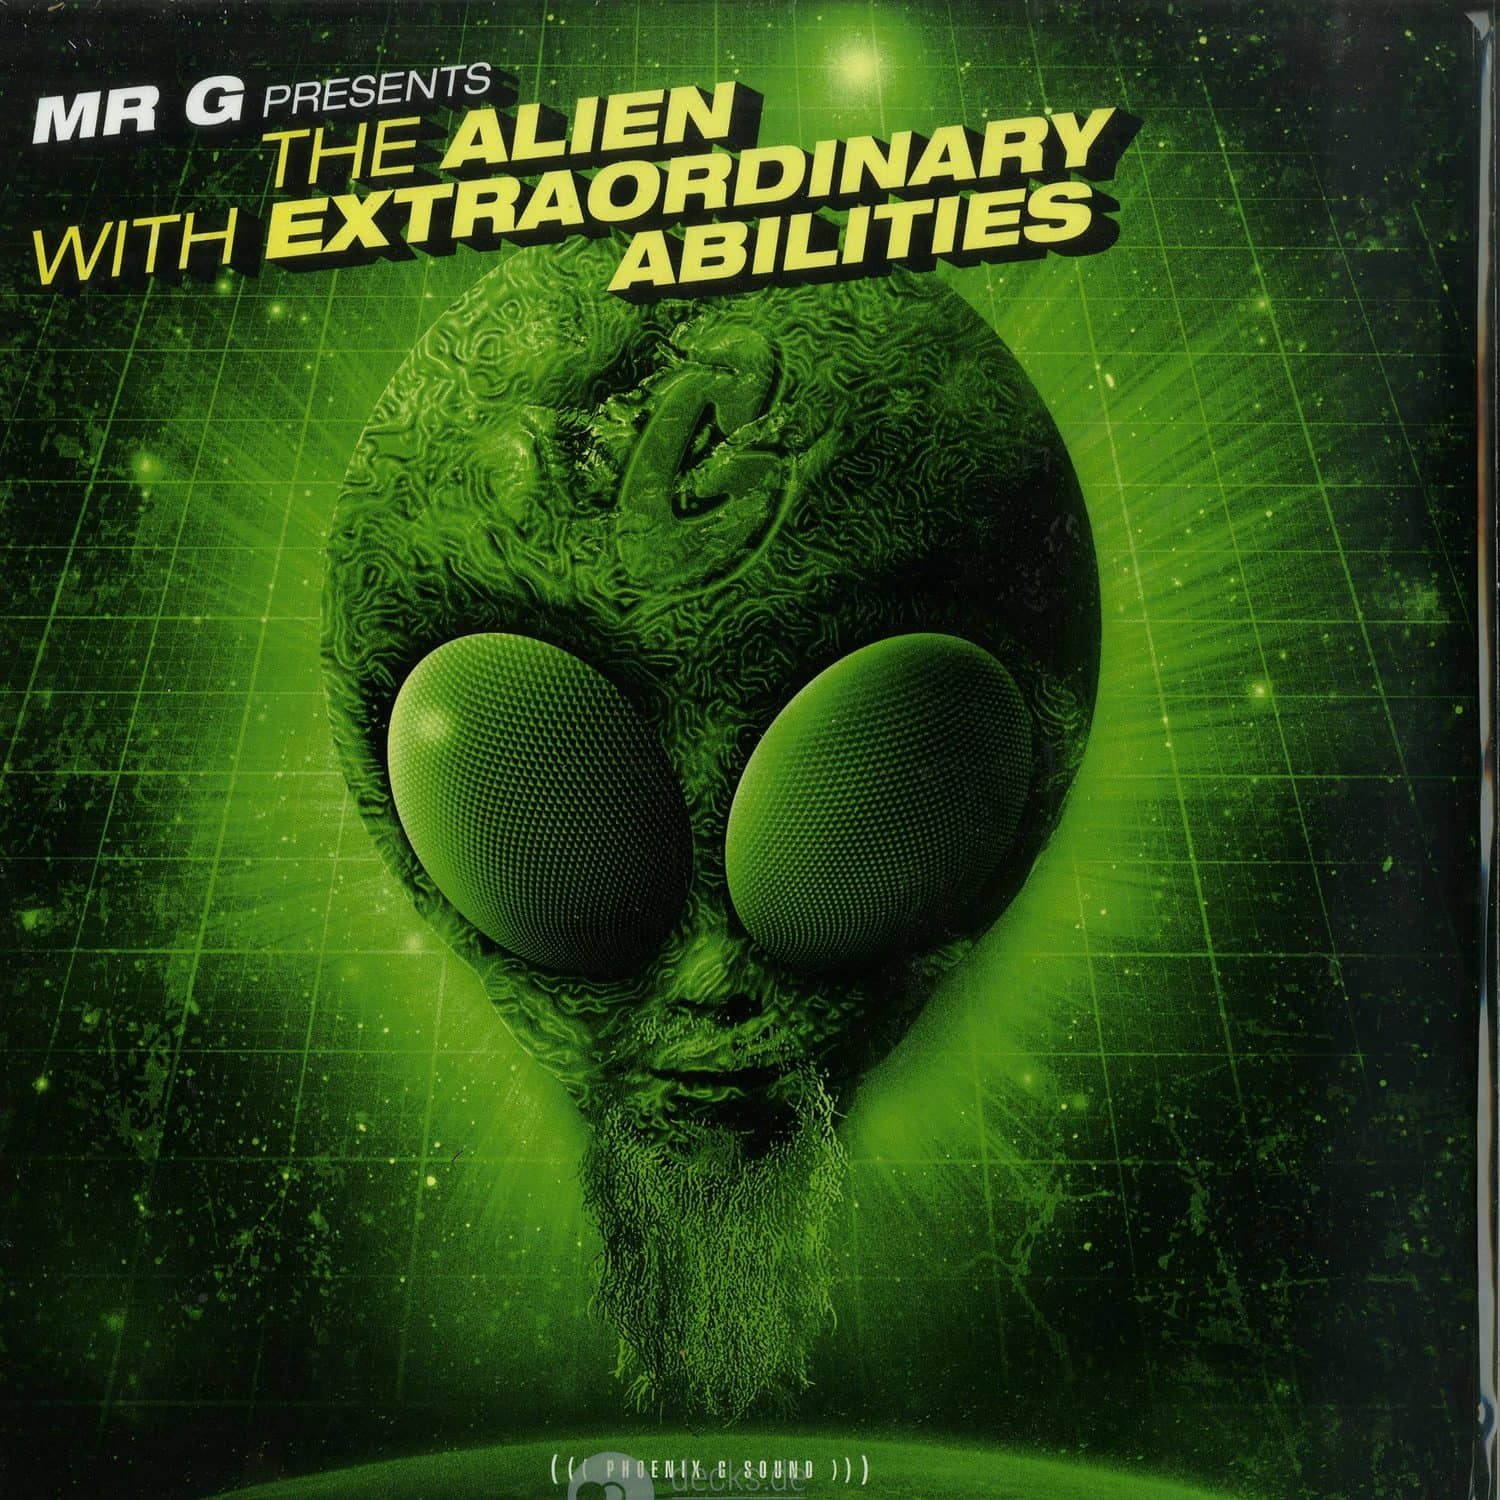 Mr. G - THE ALIEN WITH EXTRAORDINARY ABILITIES